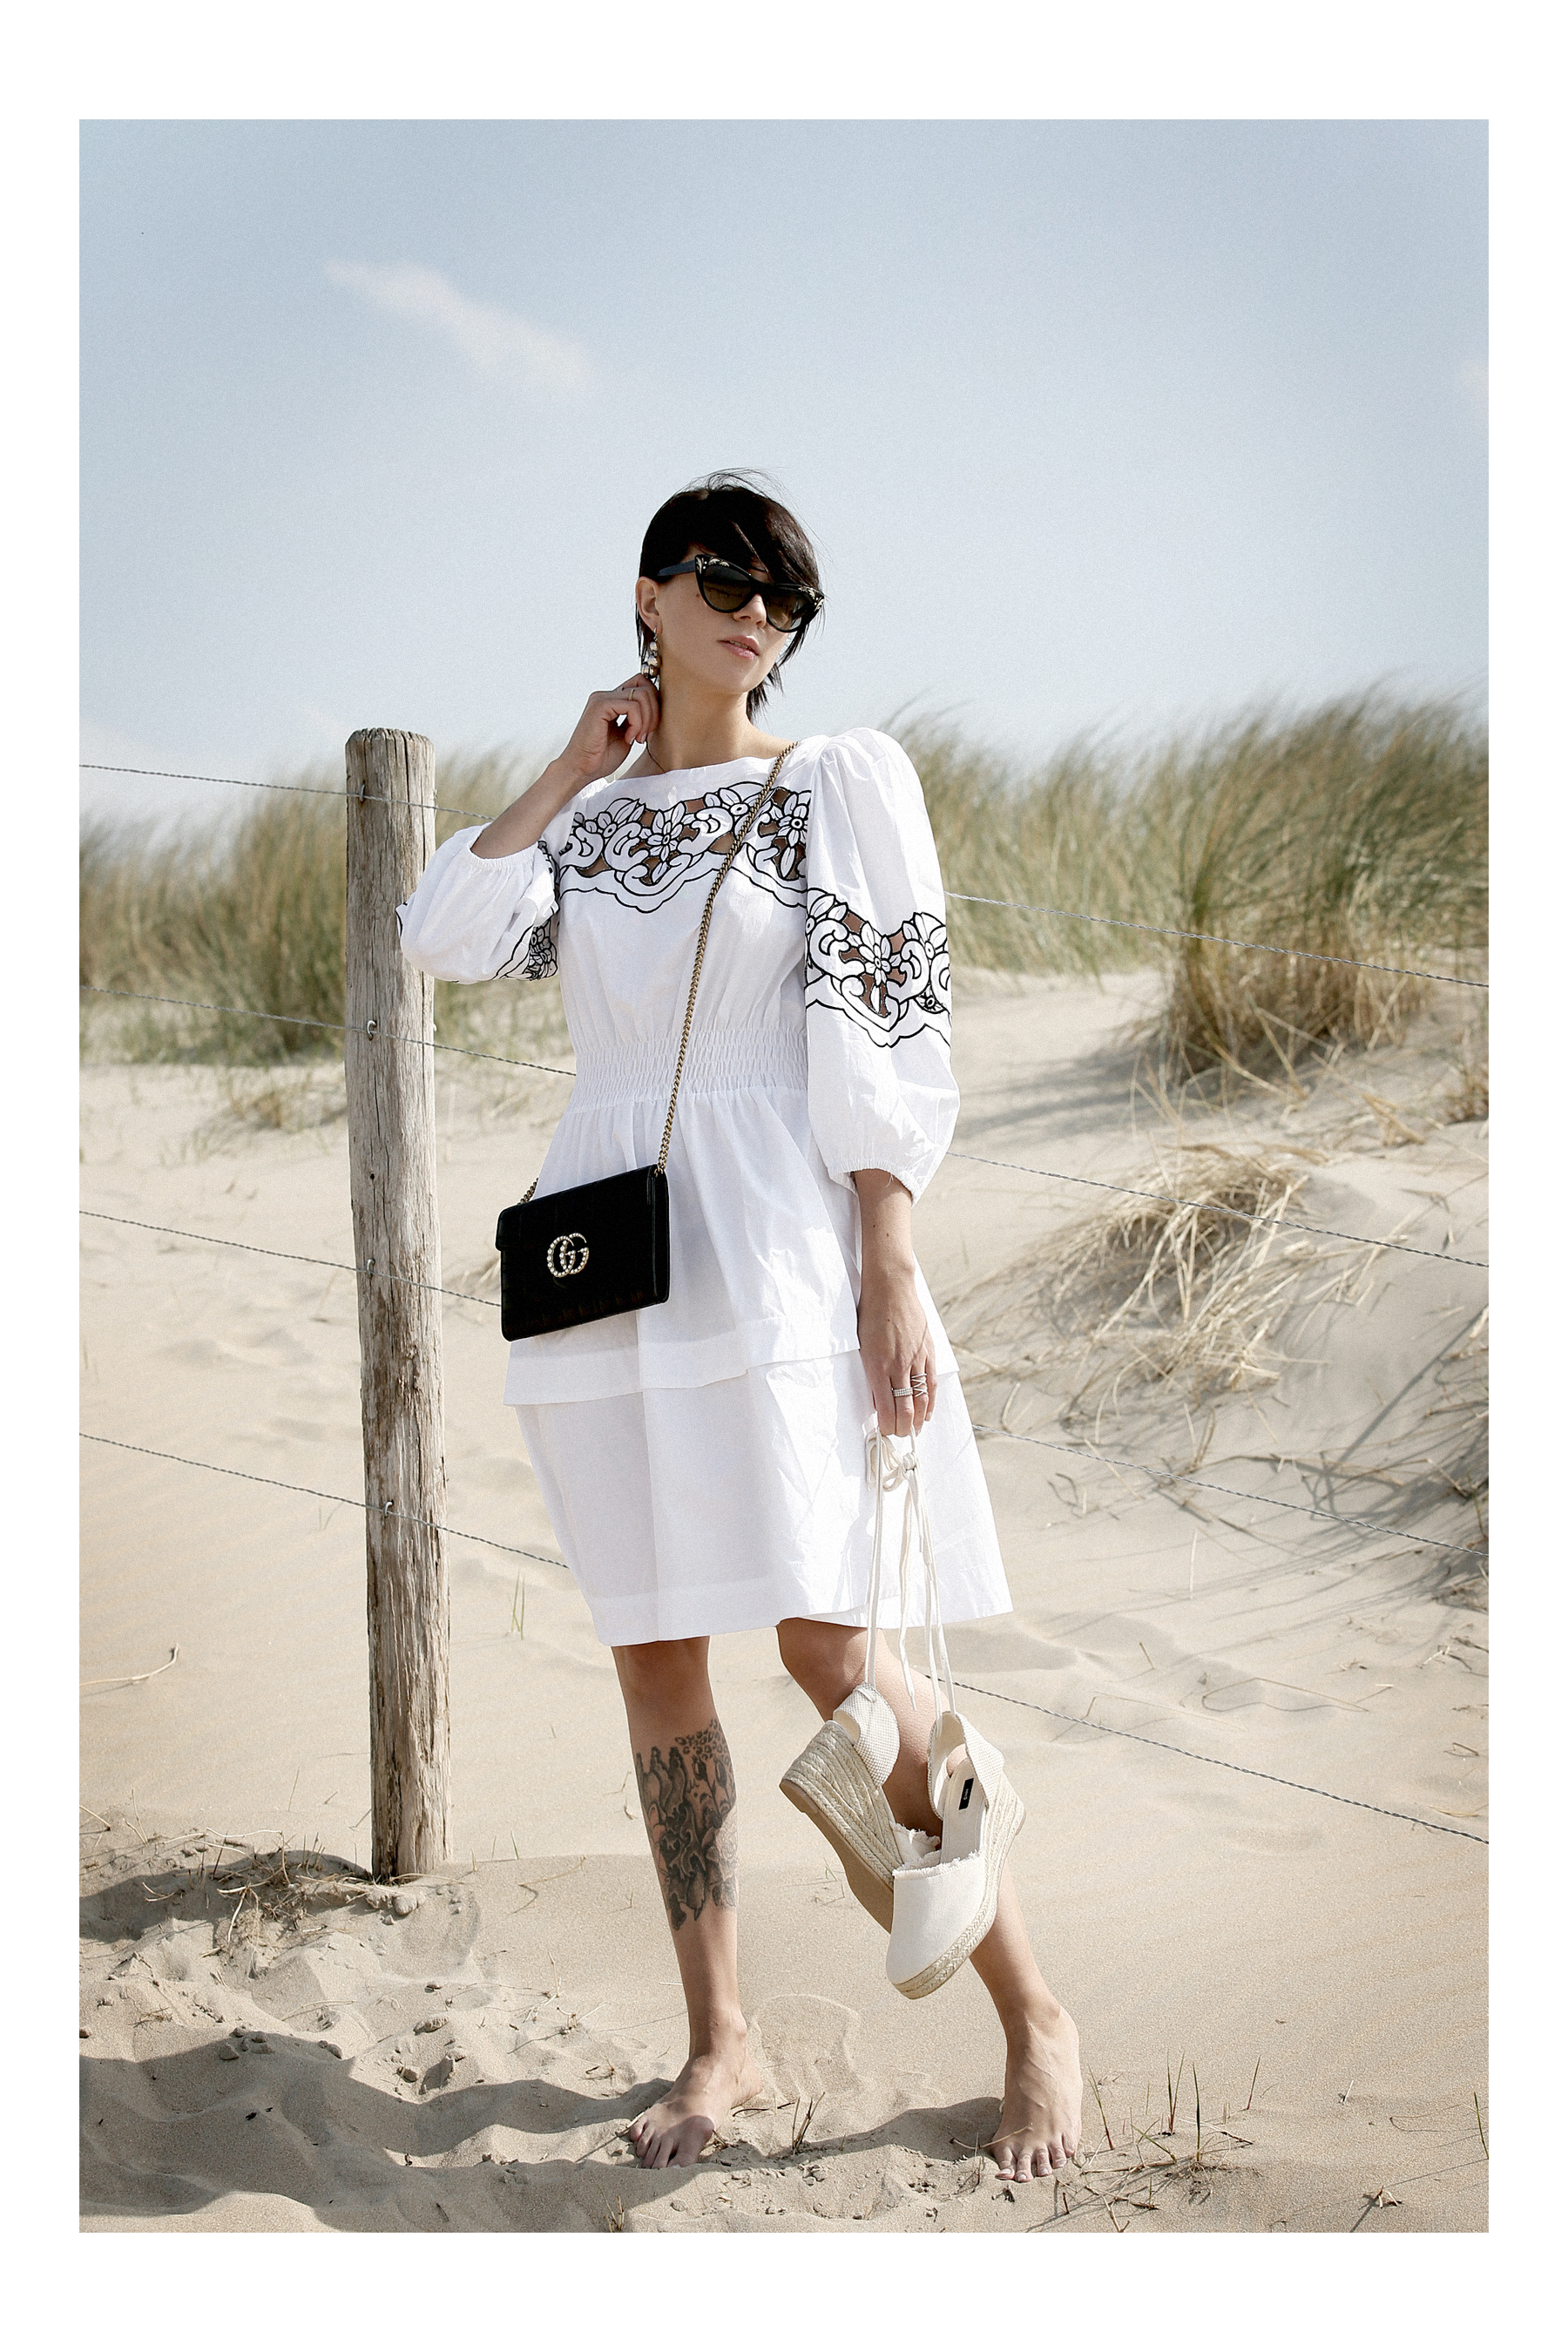 outfit breuninger pinko dress kleid gucci marmont clutch bag chain woc sunglasses blogger fashionblogger white dressing beach dunes summer holiday cats & dogs blog modeblogger ricarda schernus düsseldorf styleblogger sea ocean photography 7